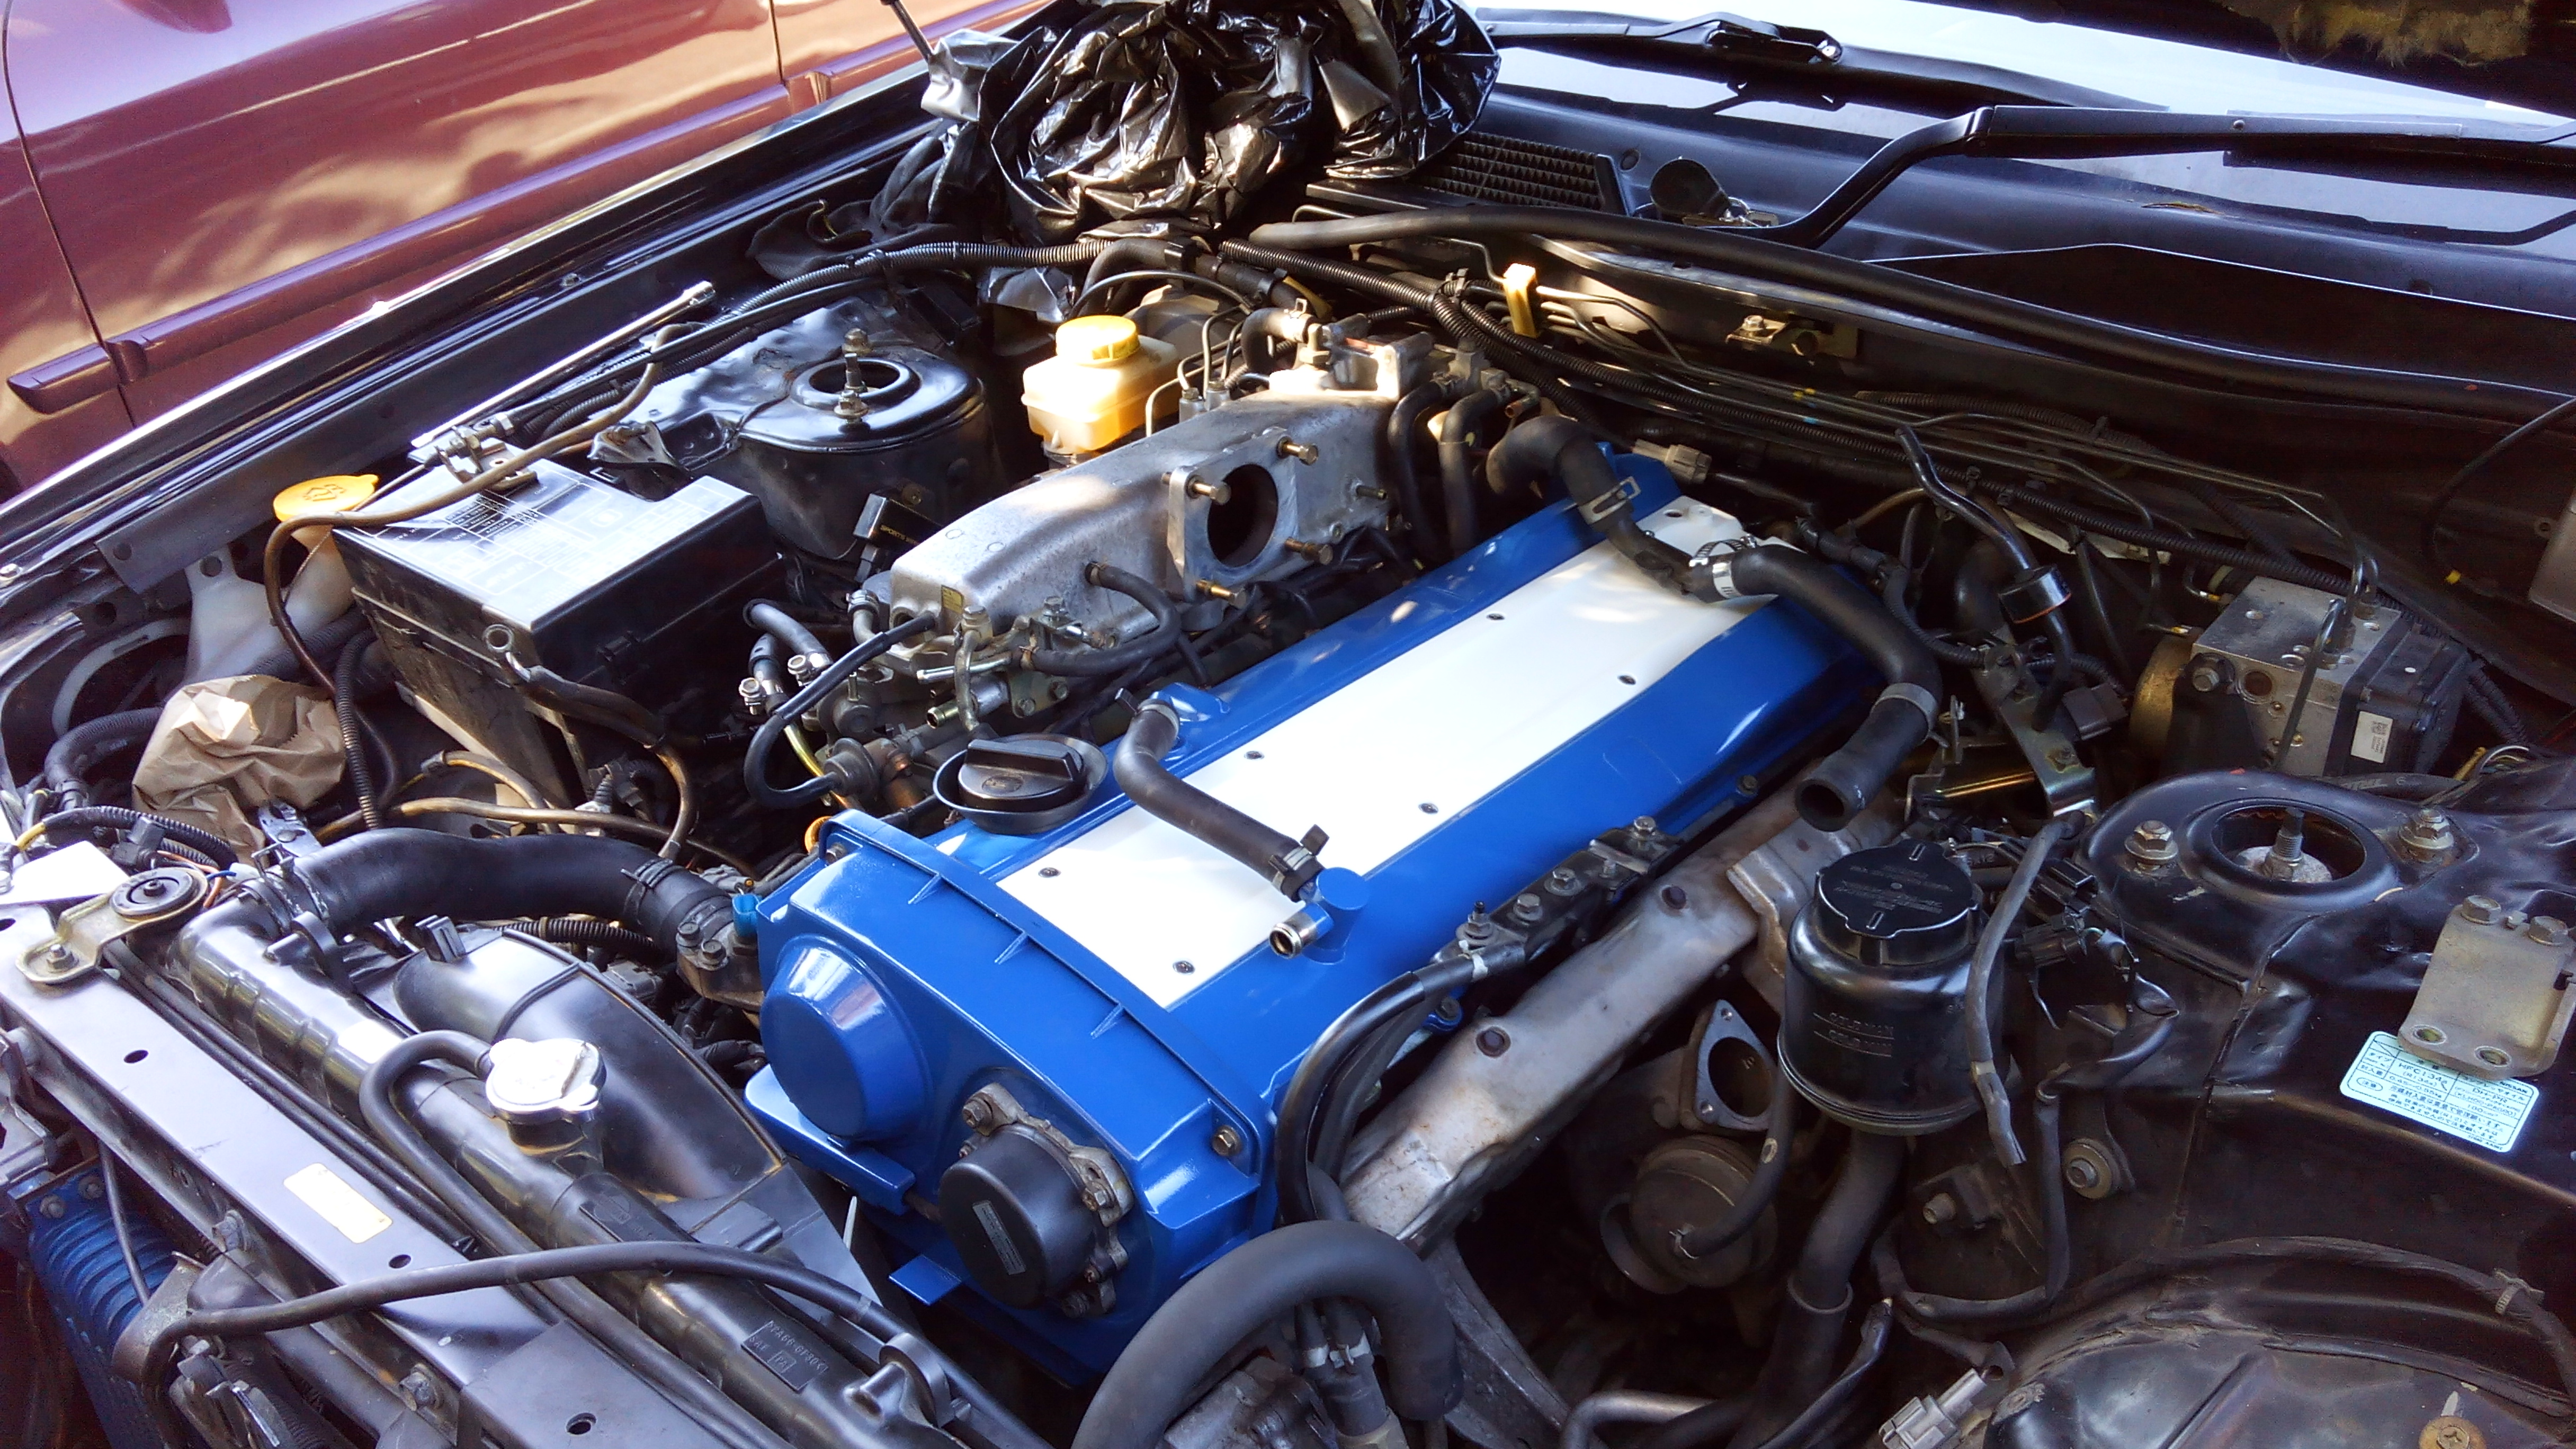 Its Monday And My Company Has Open WiFi Show Me Your Engine Bay - Overhaul car show